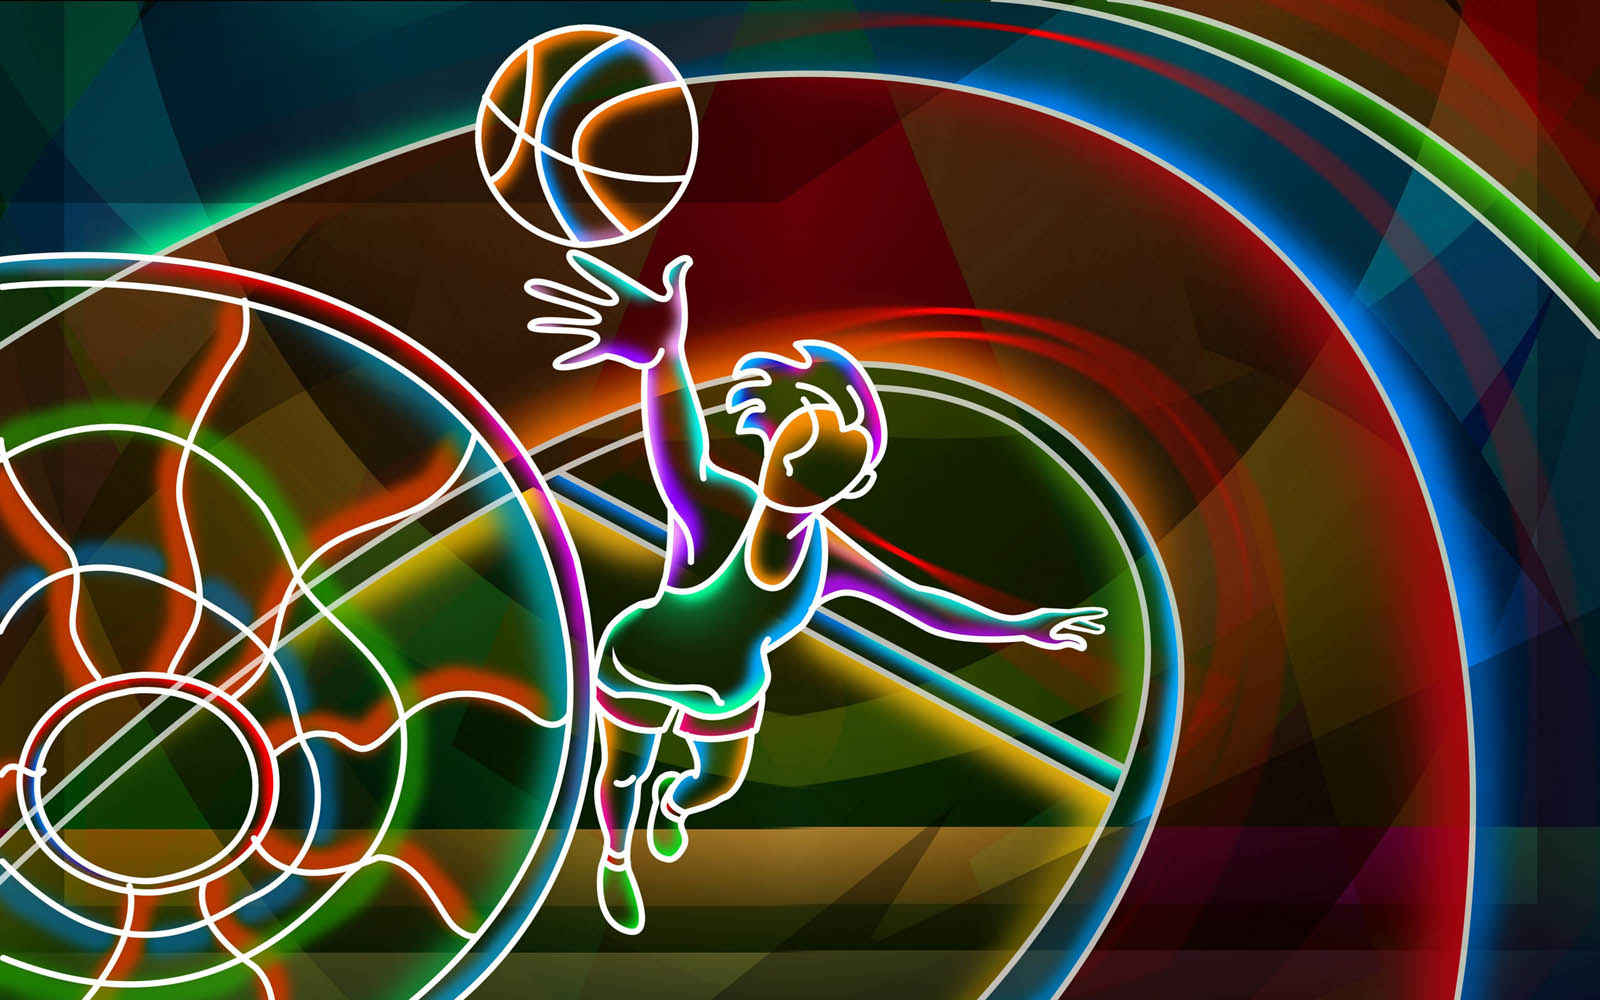 tag neon art wallpapers - photo #9